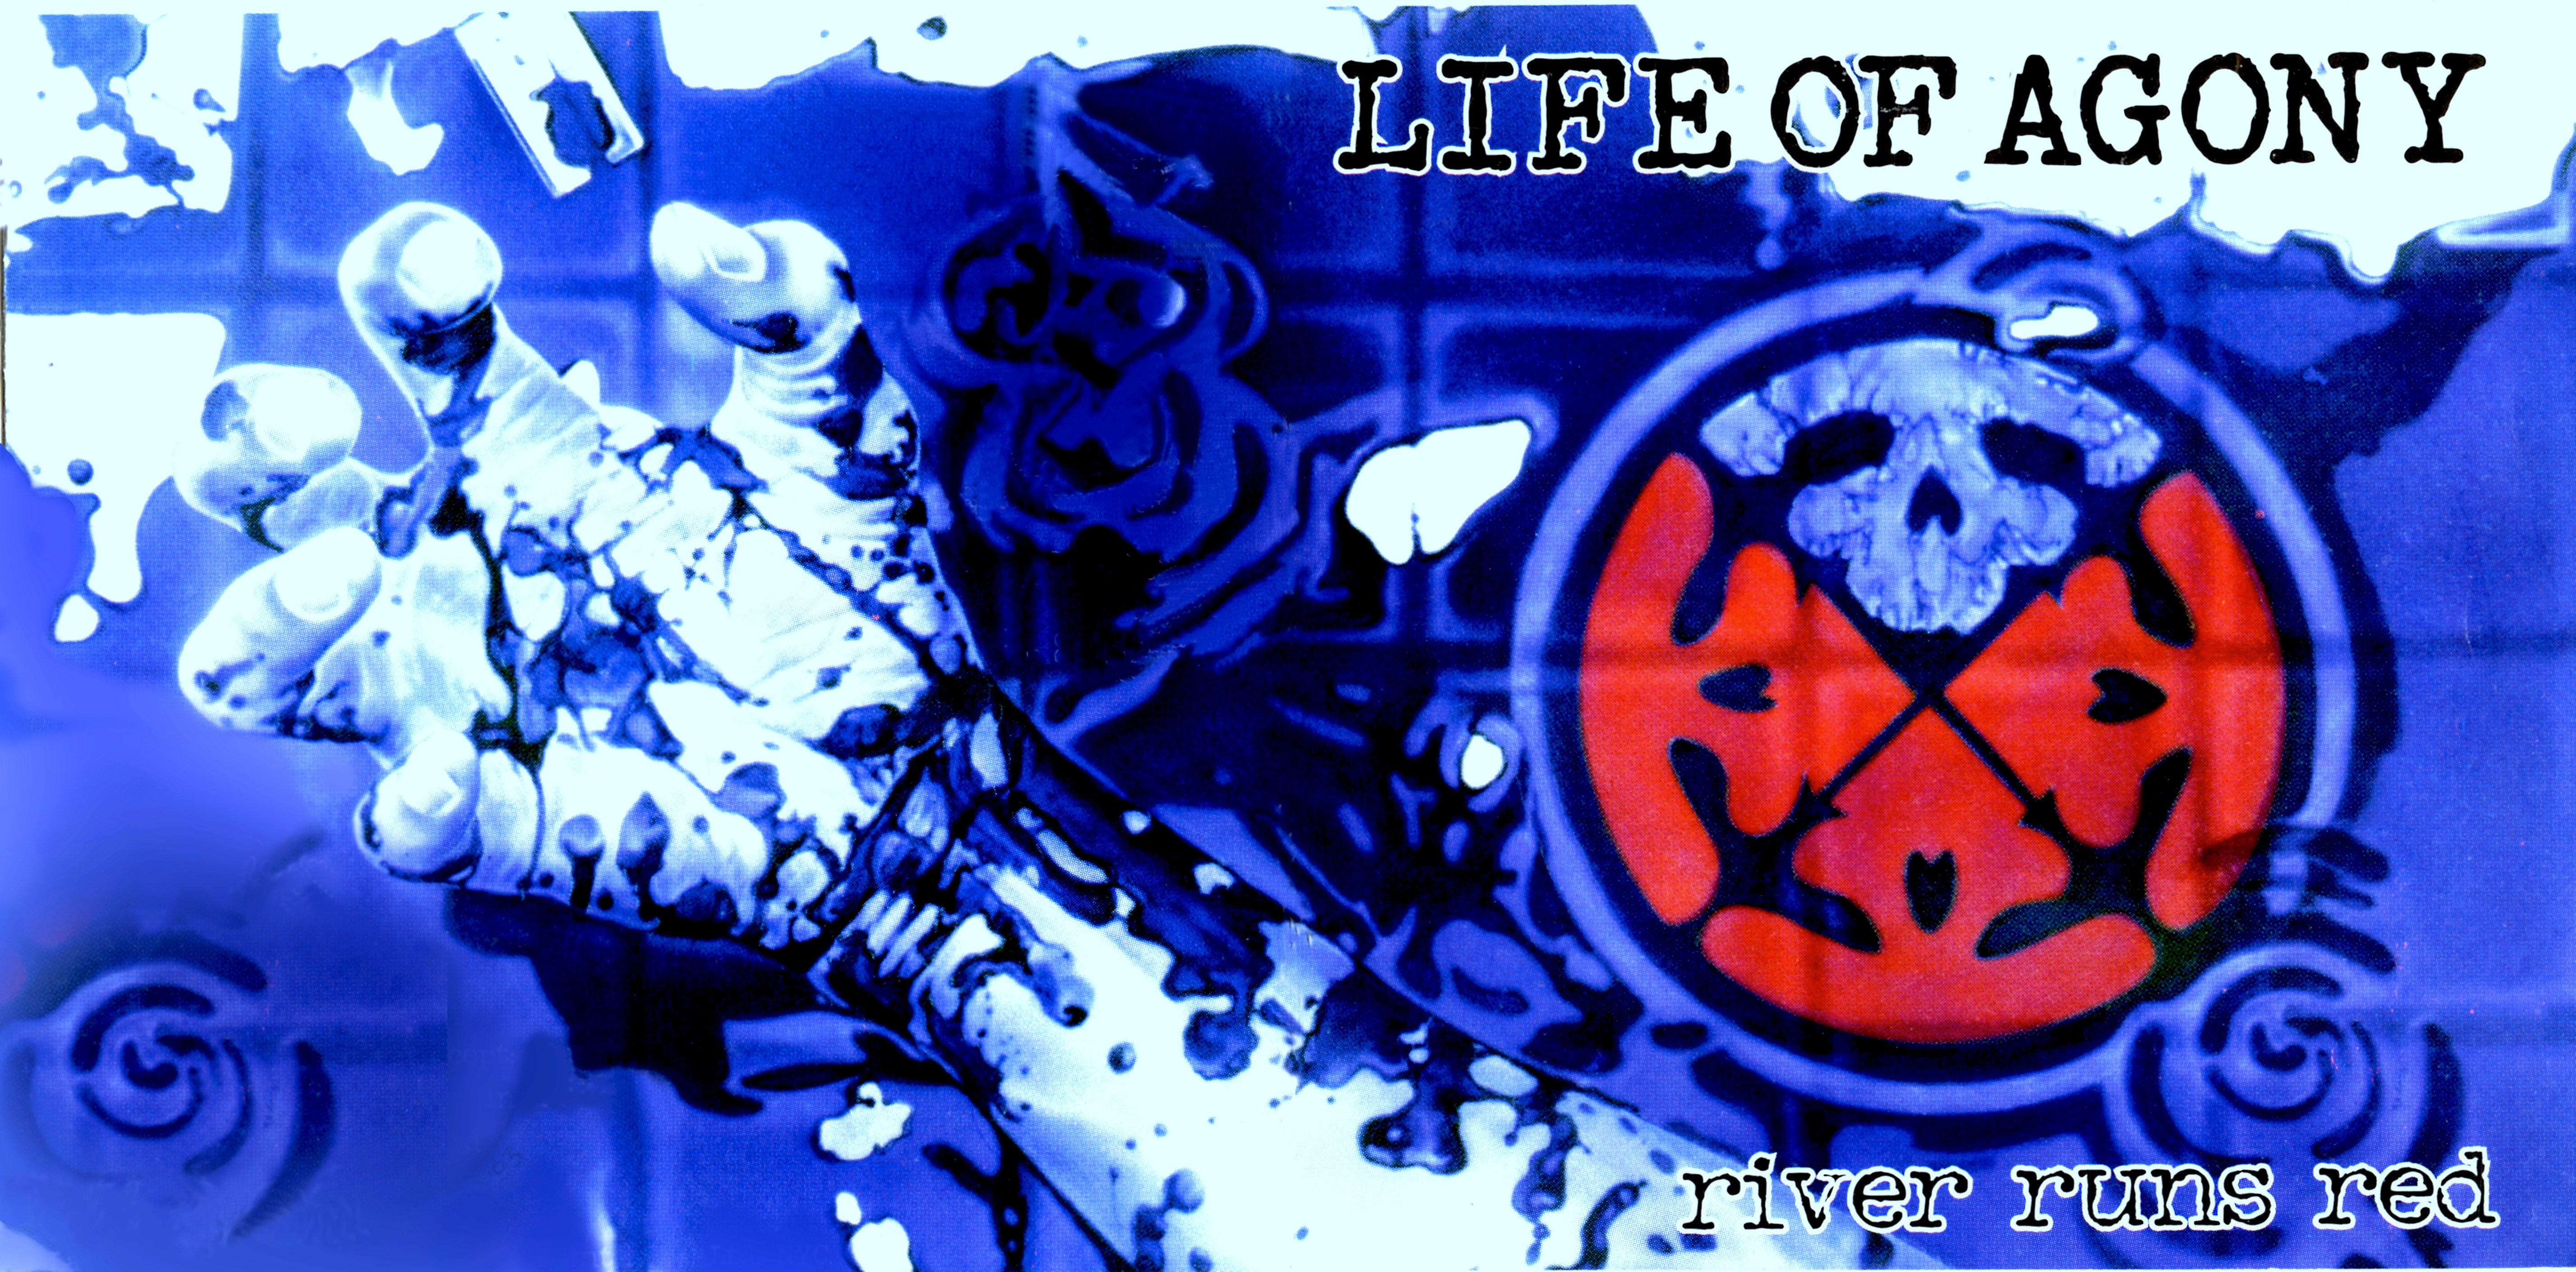 Life Of Agony Backgrounds, Compatible - PC, Mobile, Gadgets  5707x2818 px